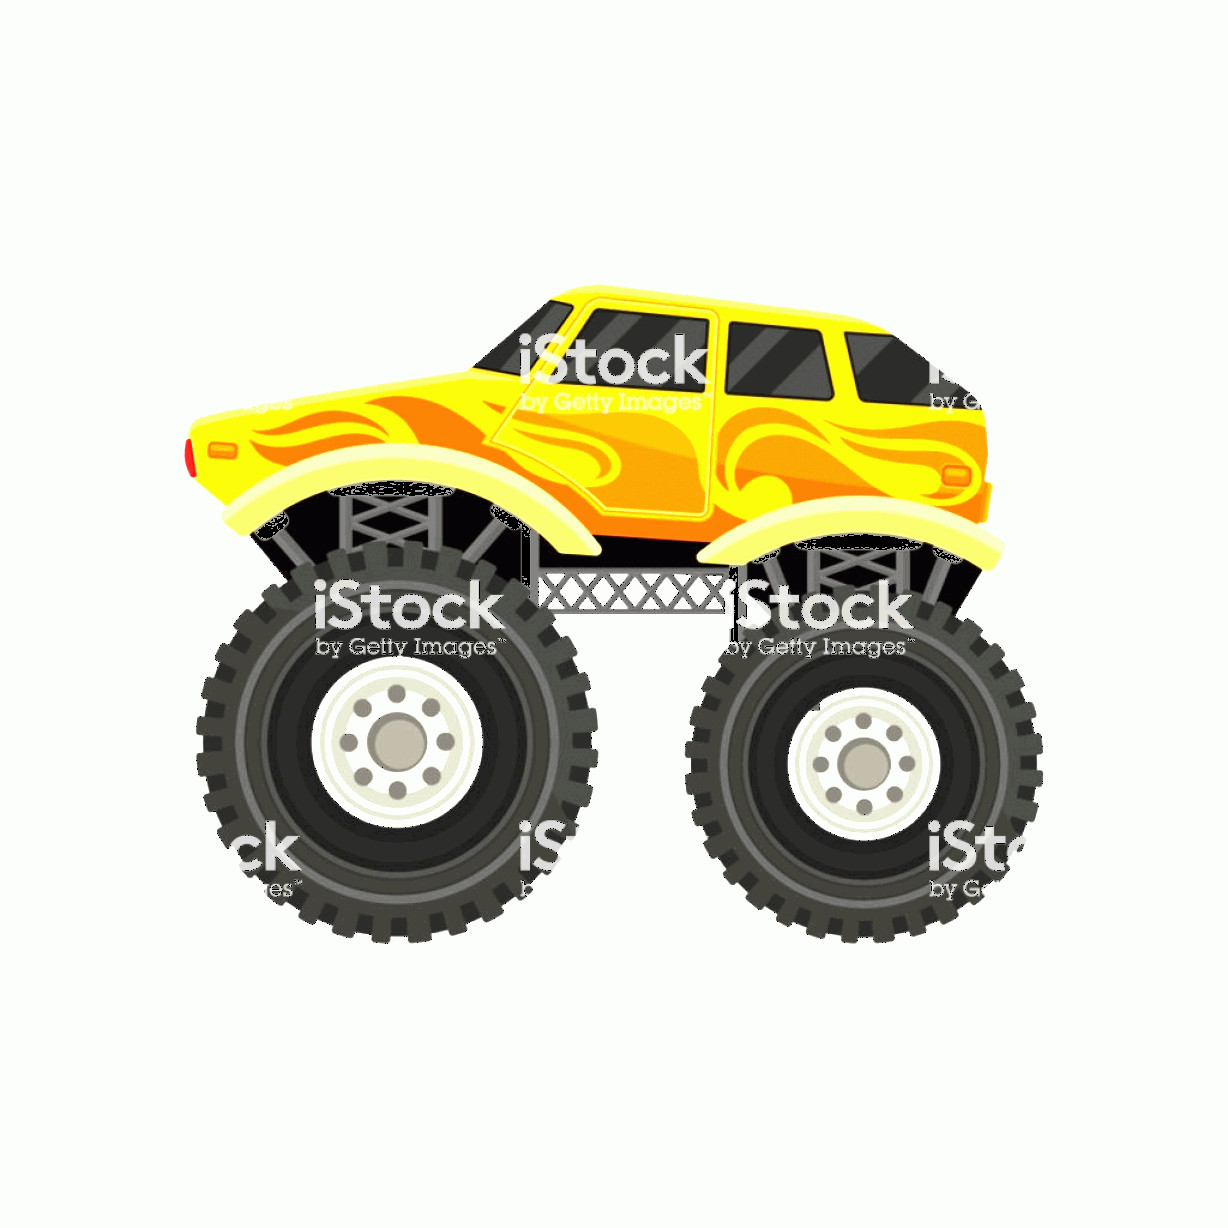 Monster Truck Tires Vector: Flat Vector Icon Of Bright Yellow Monster Car With Large Tires Element For Mobile Gm